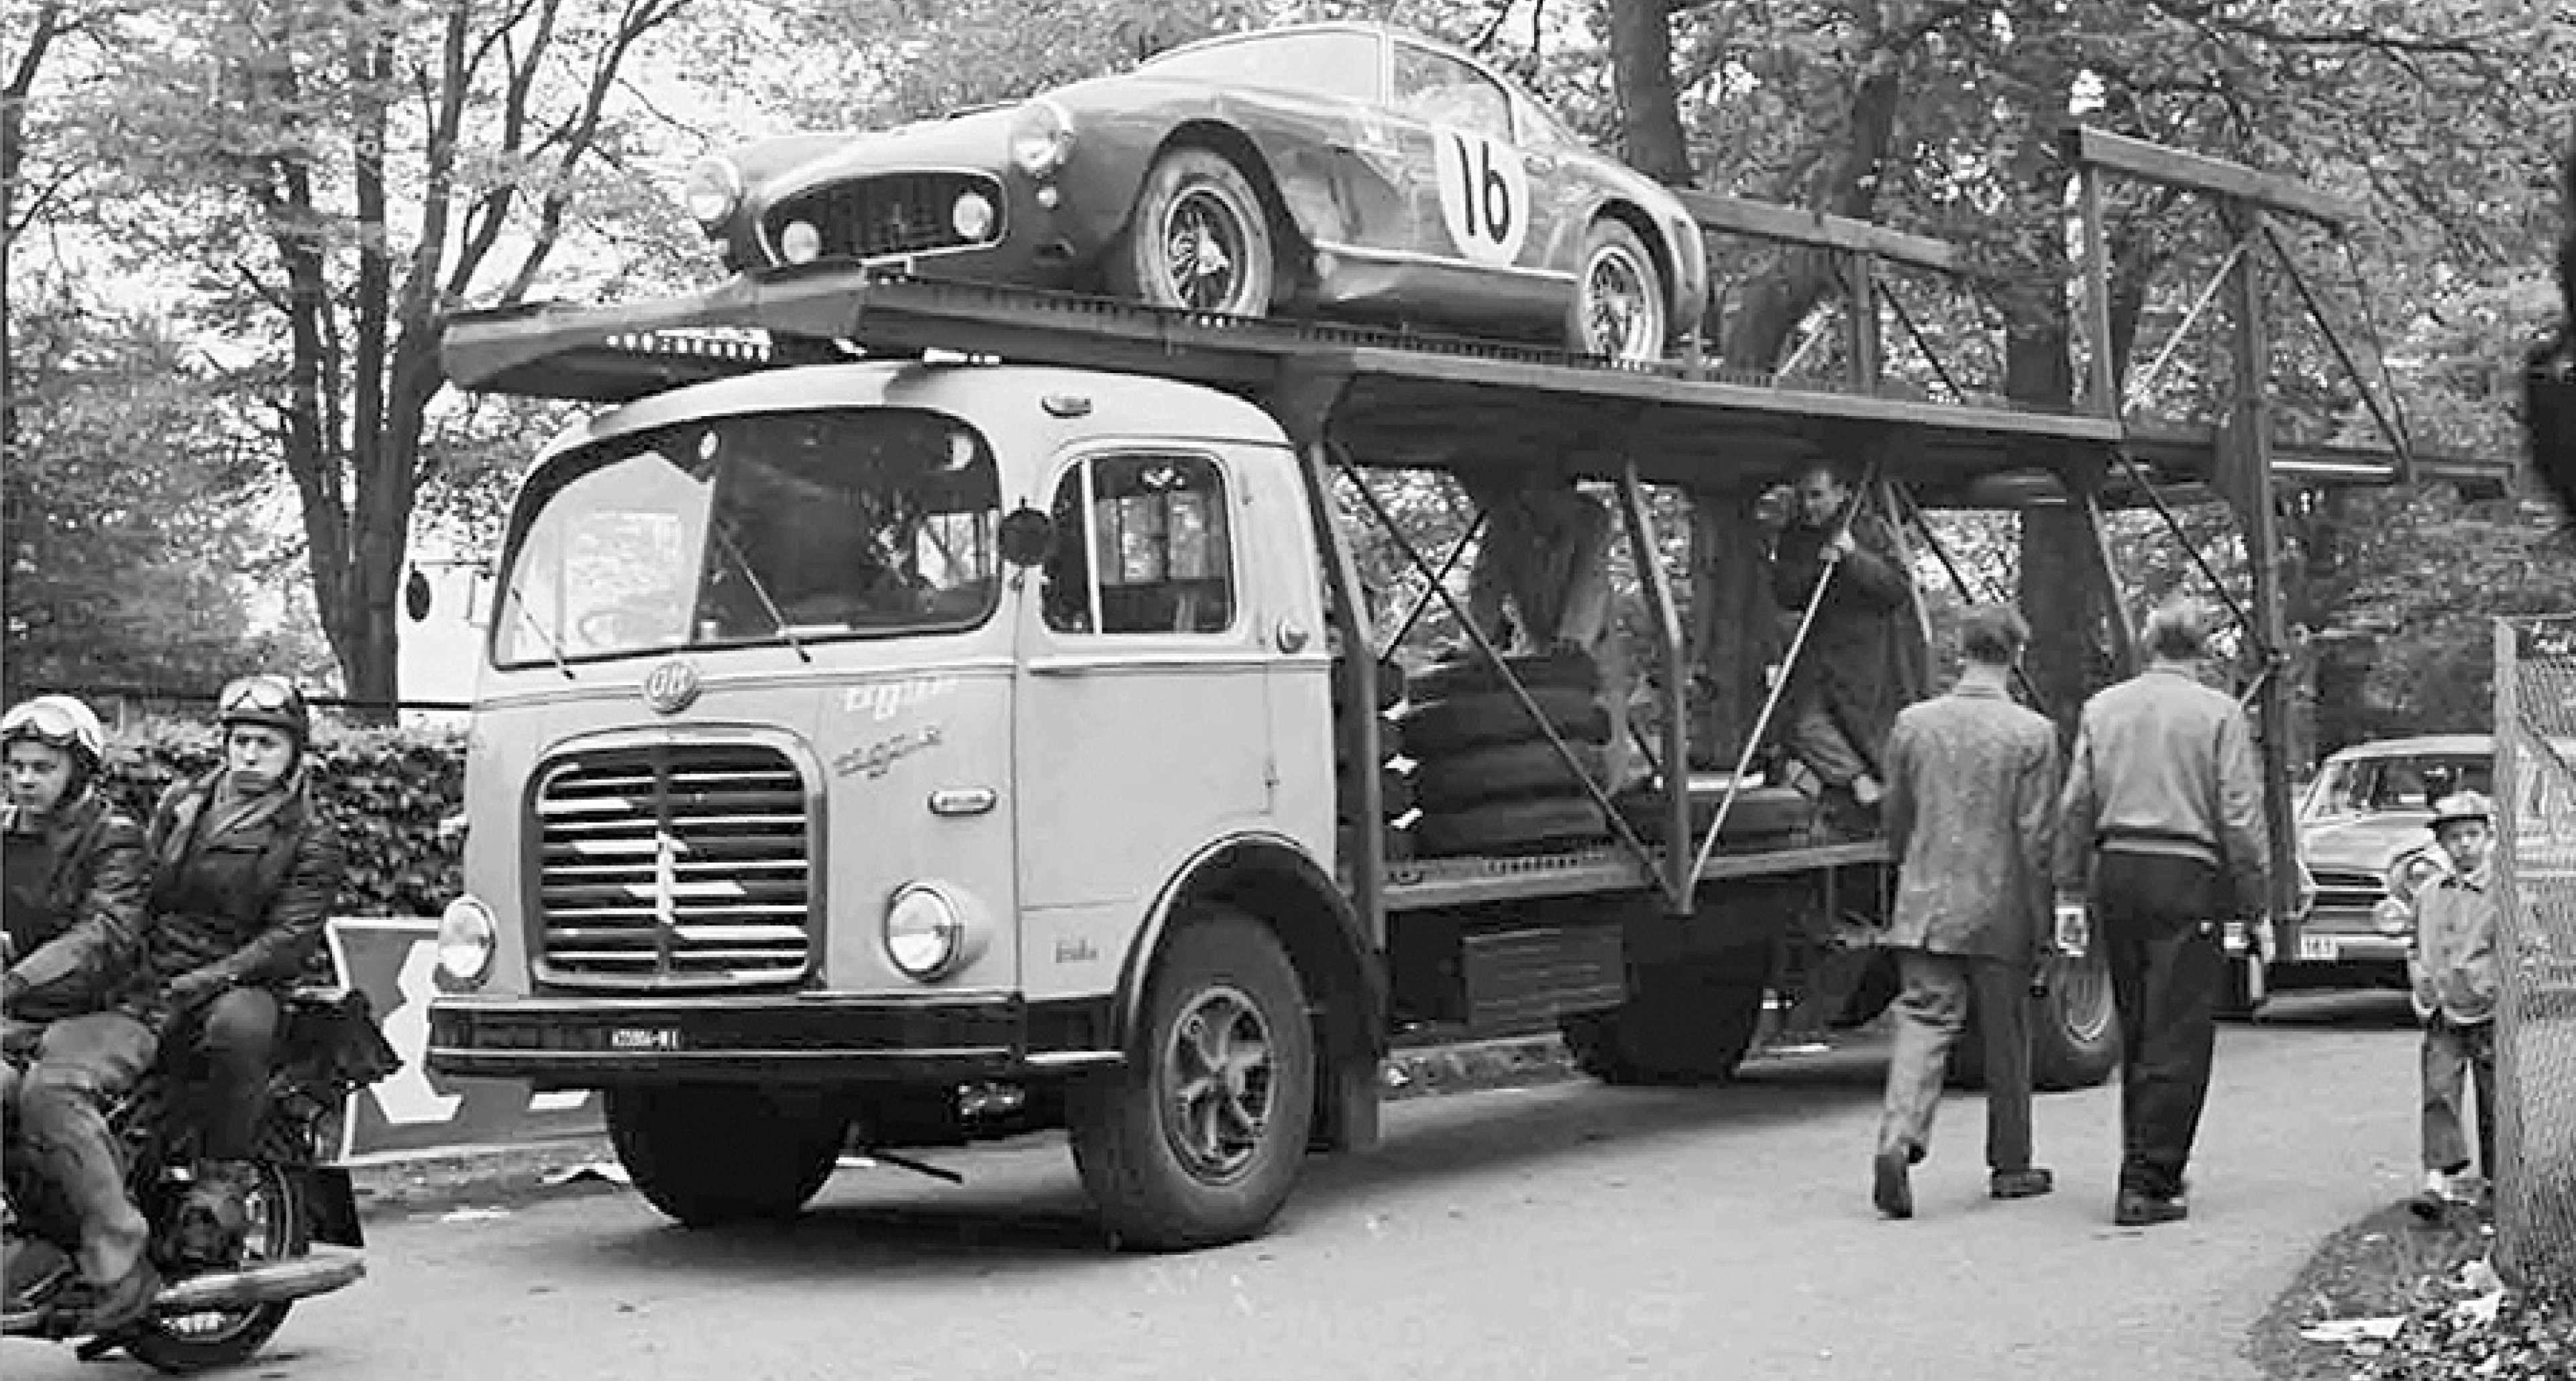 The Gentleman's Library: Racing Transporters at Work